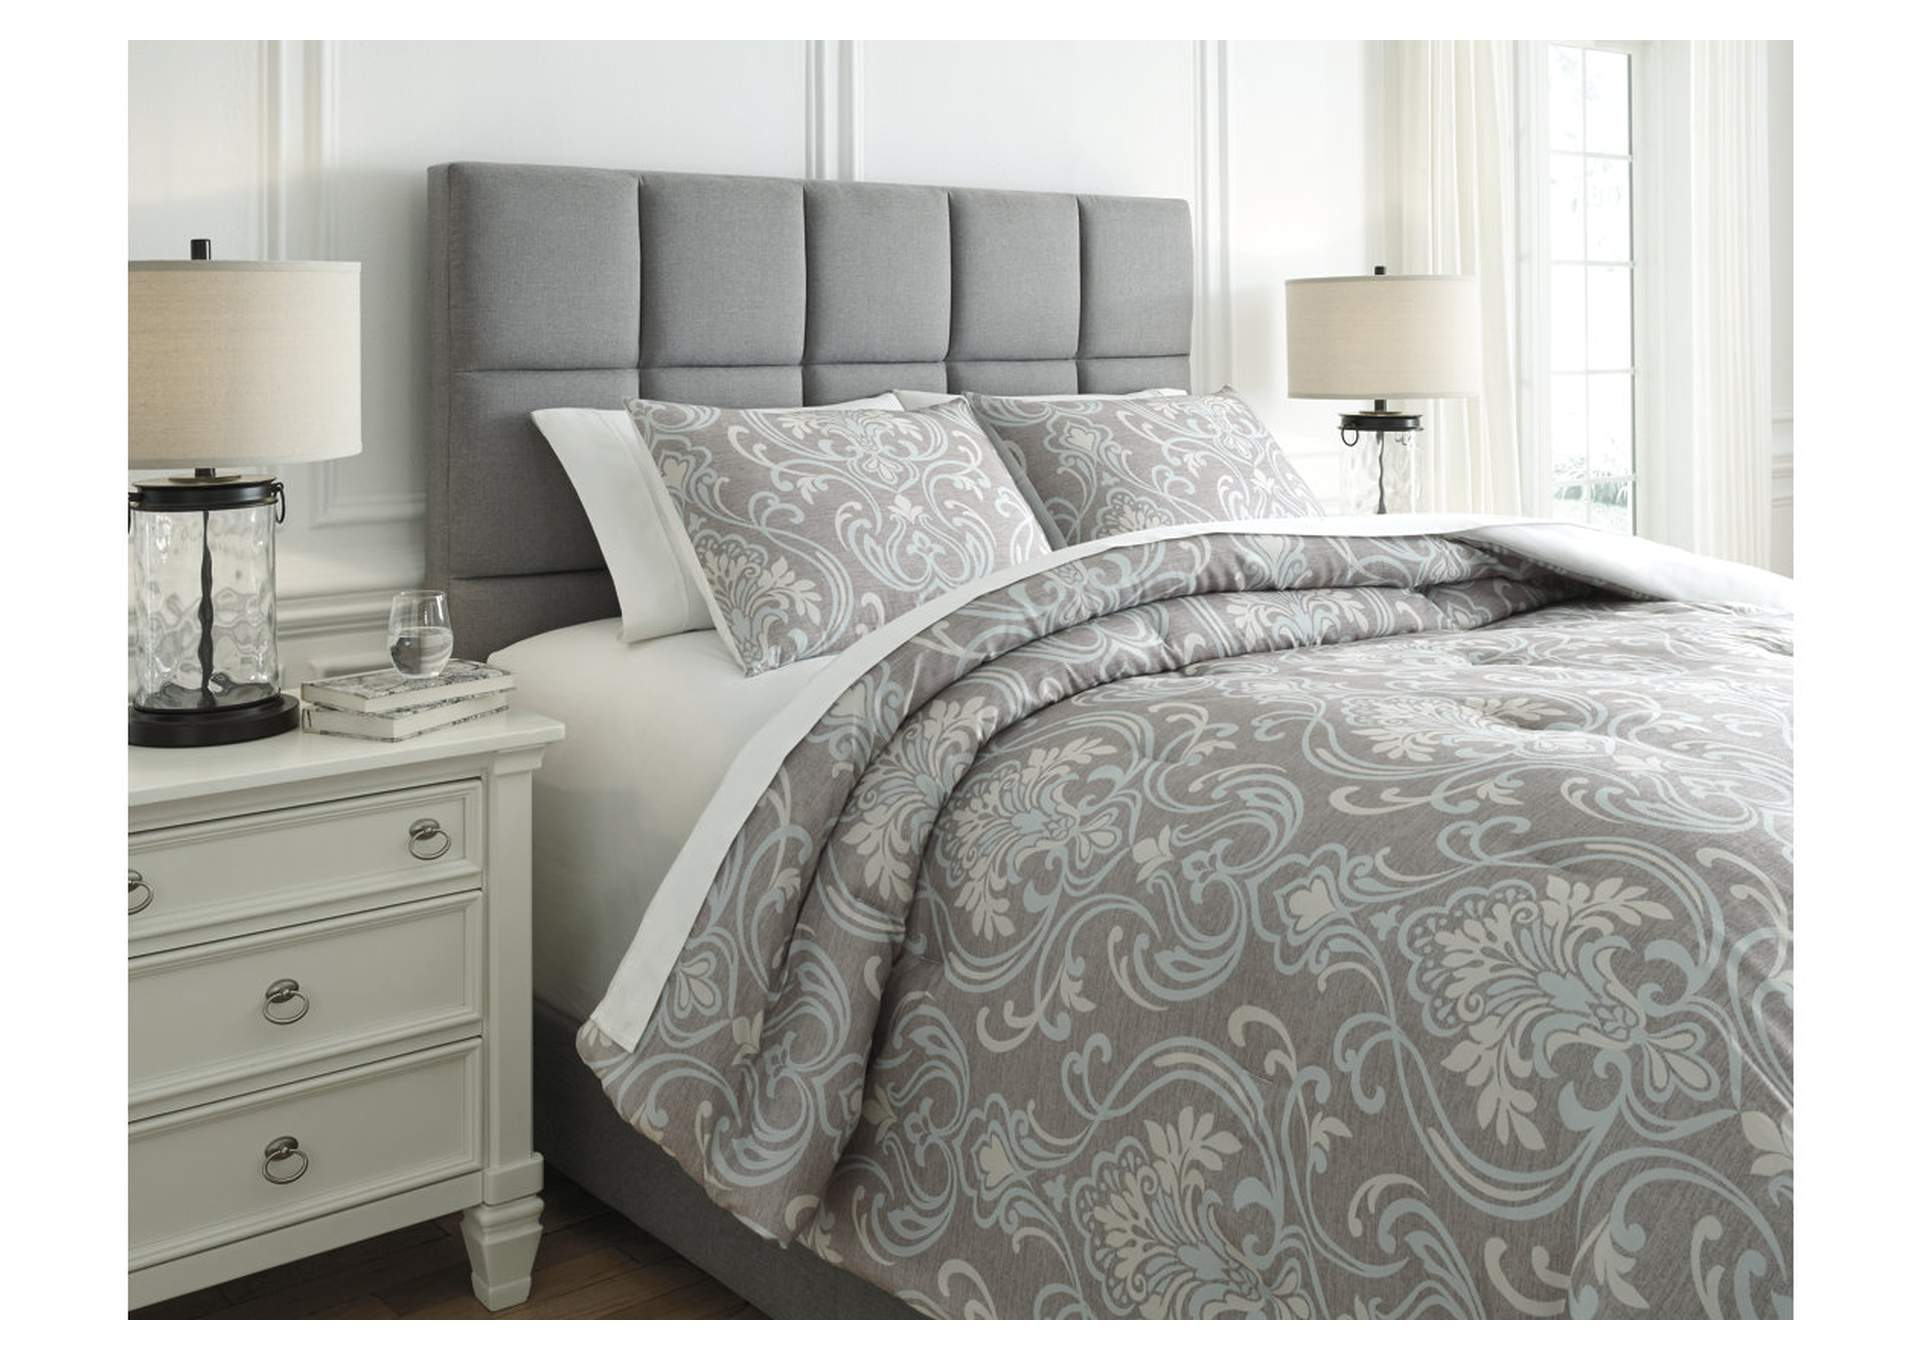 Noel Gray/Tan Queen Comforter Set,Signature Design By Ashley